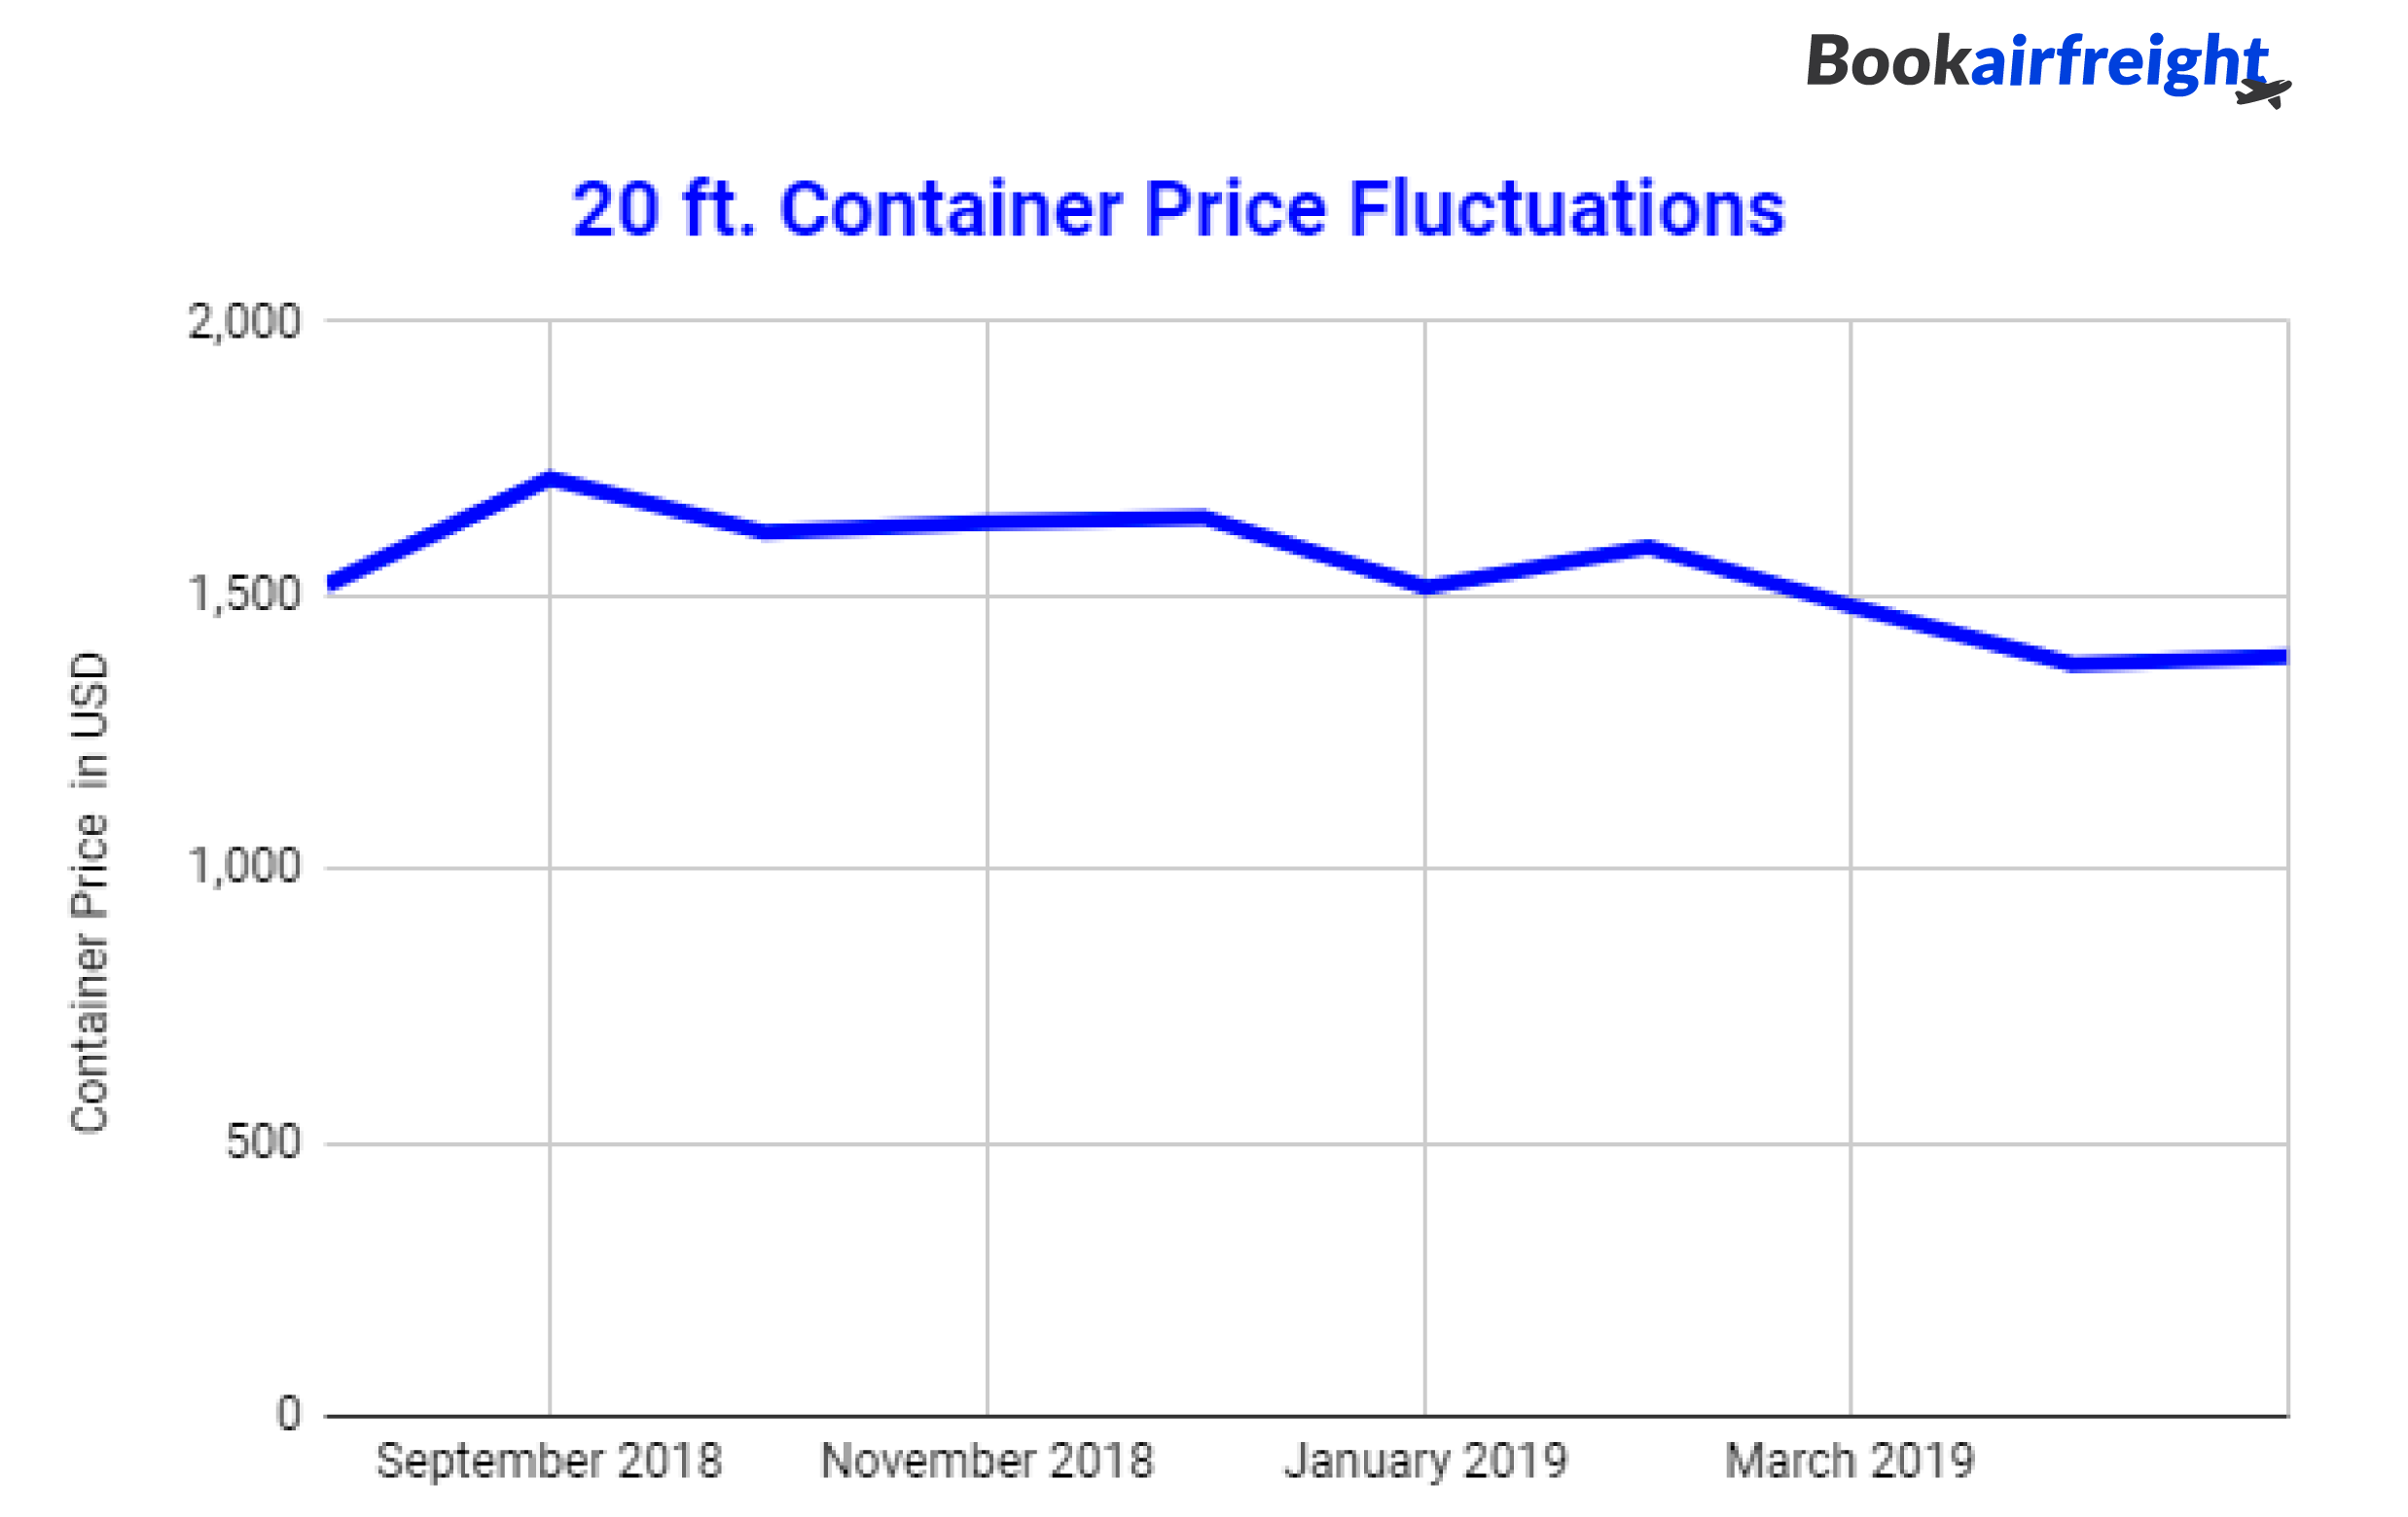 how much does it cost for a 20ft container?